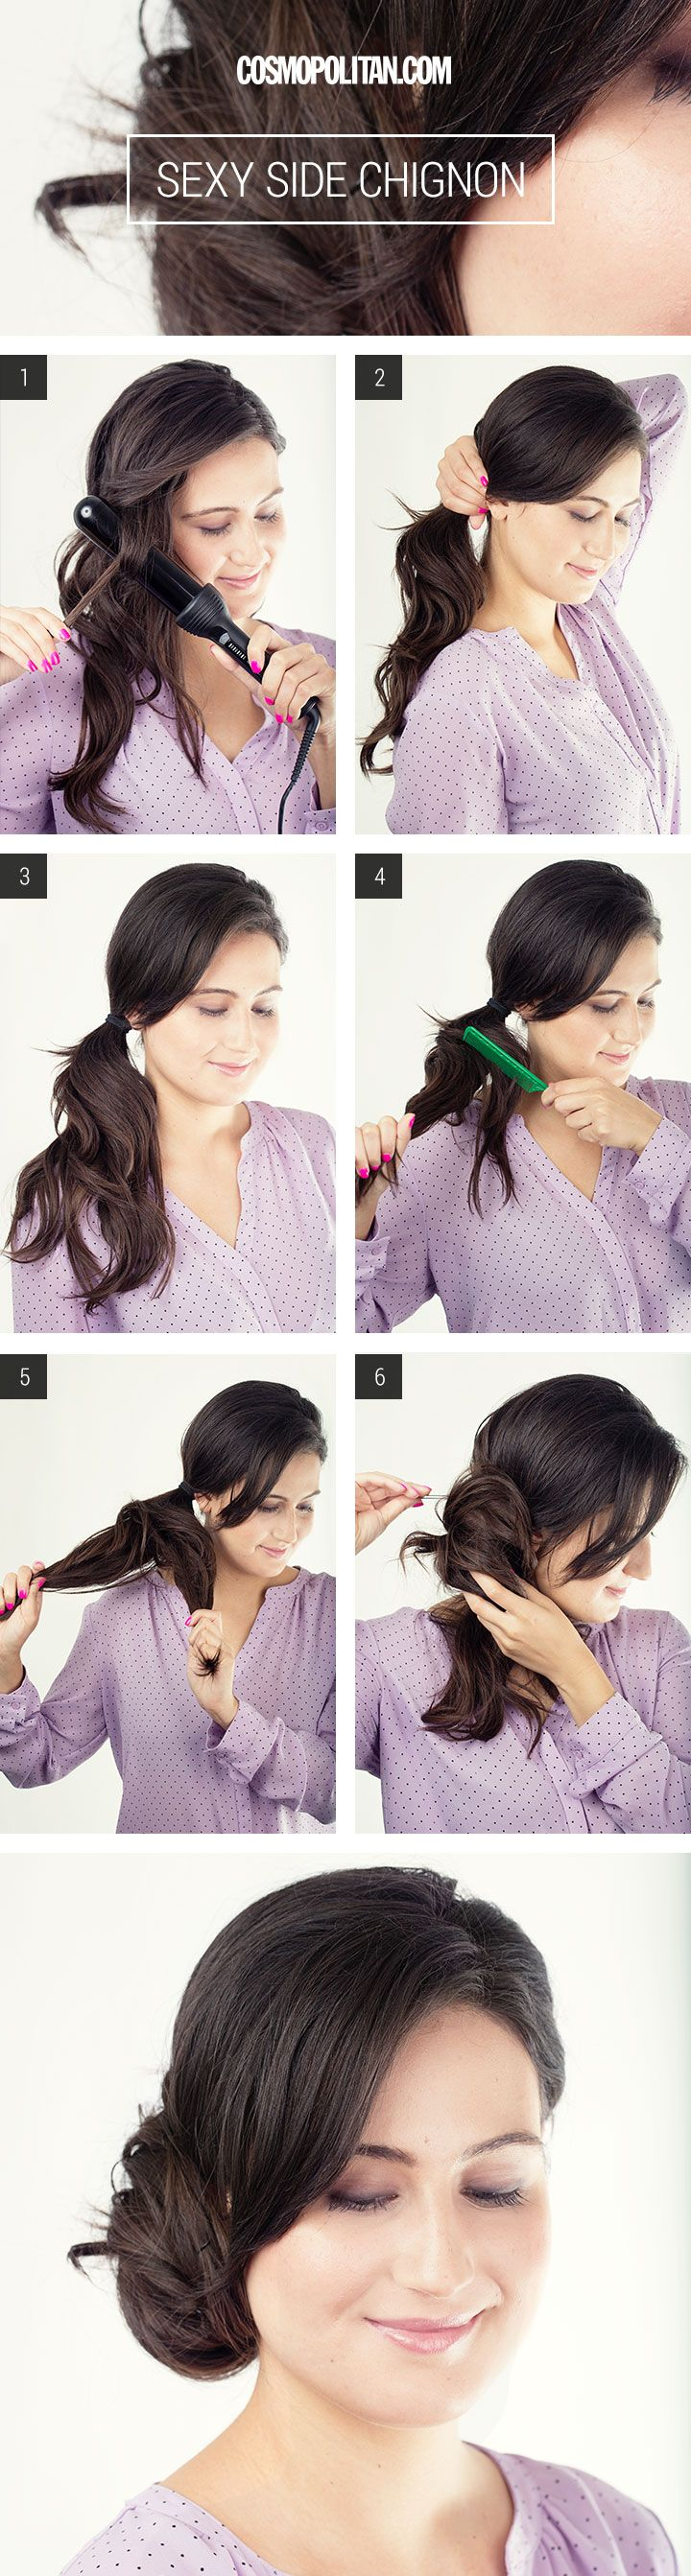 372 best Hairdo Idea images on Pinterest